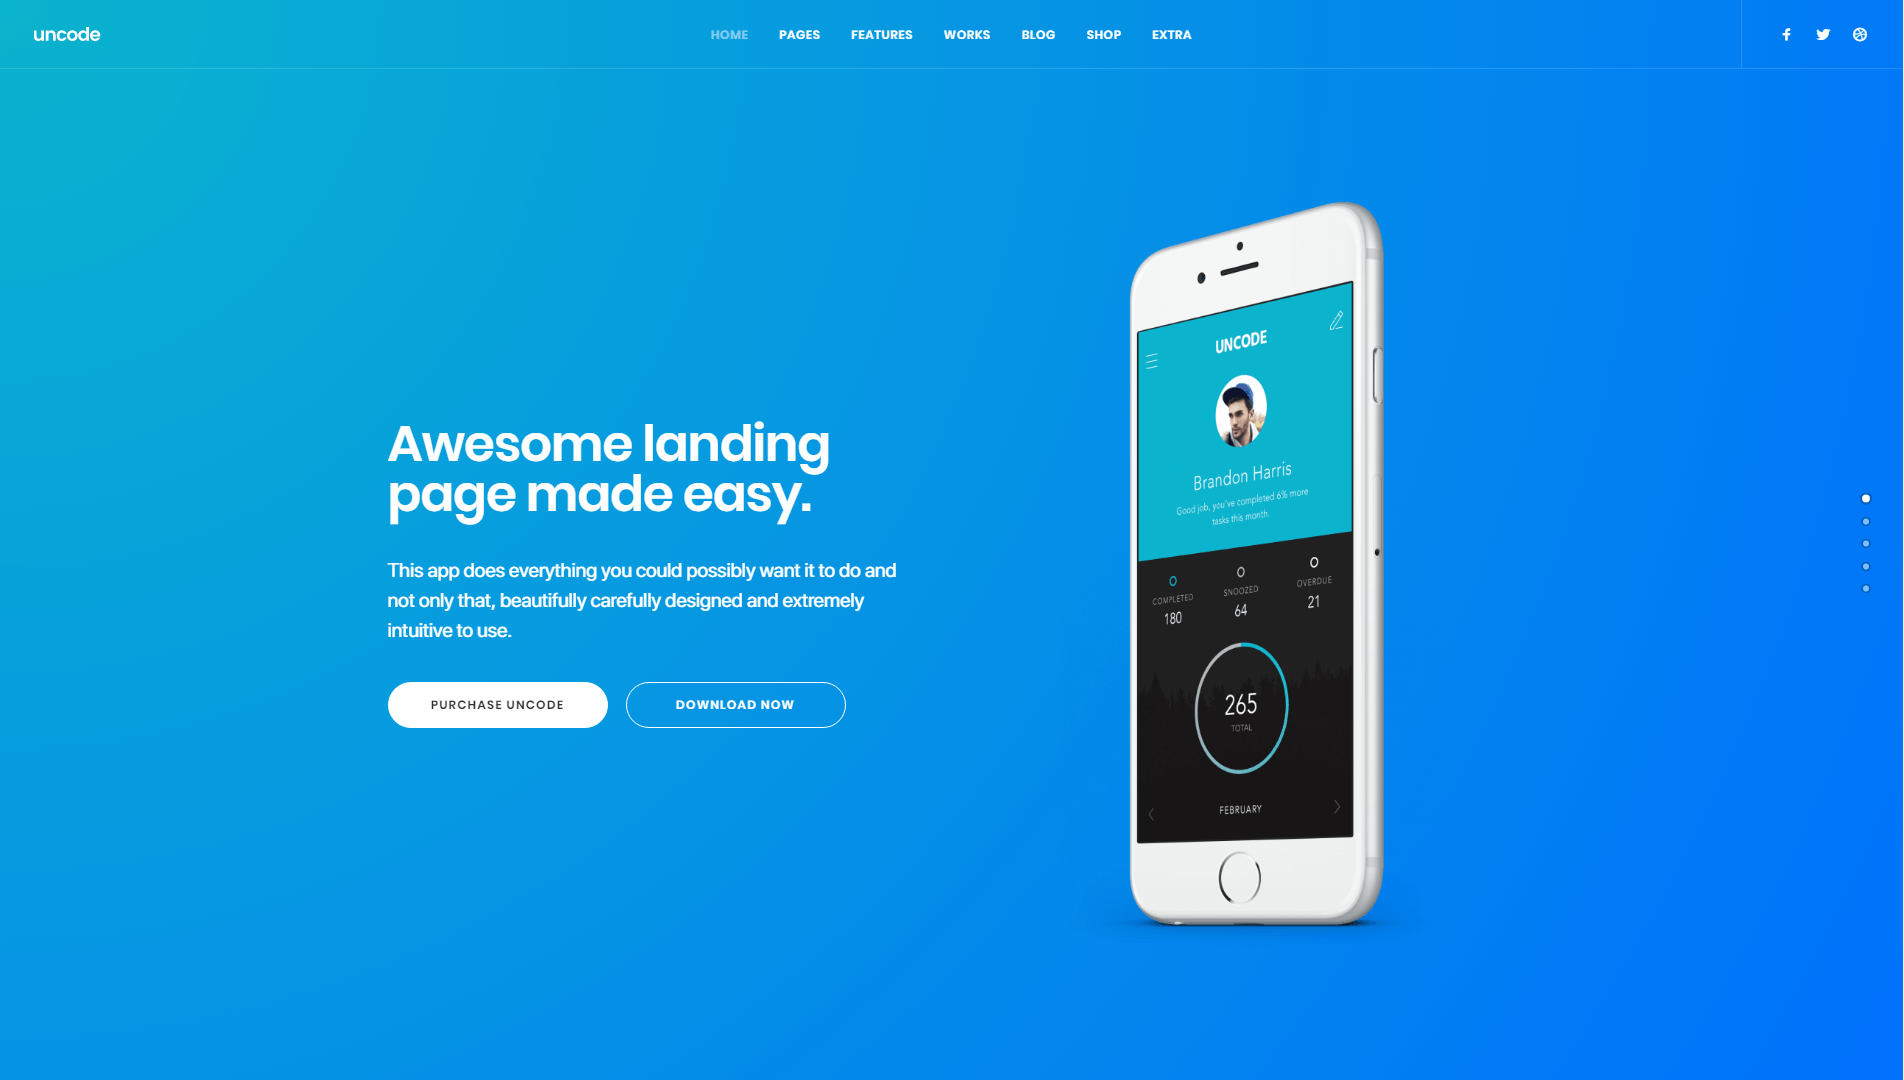 An example of an Uncode landing page.